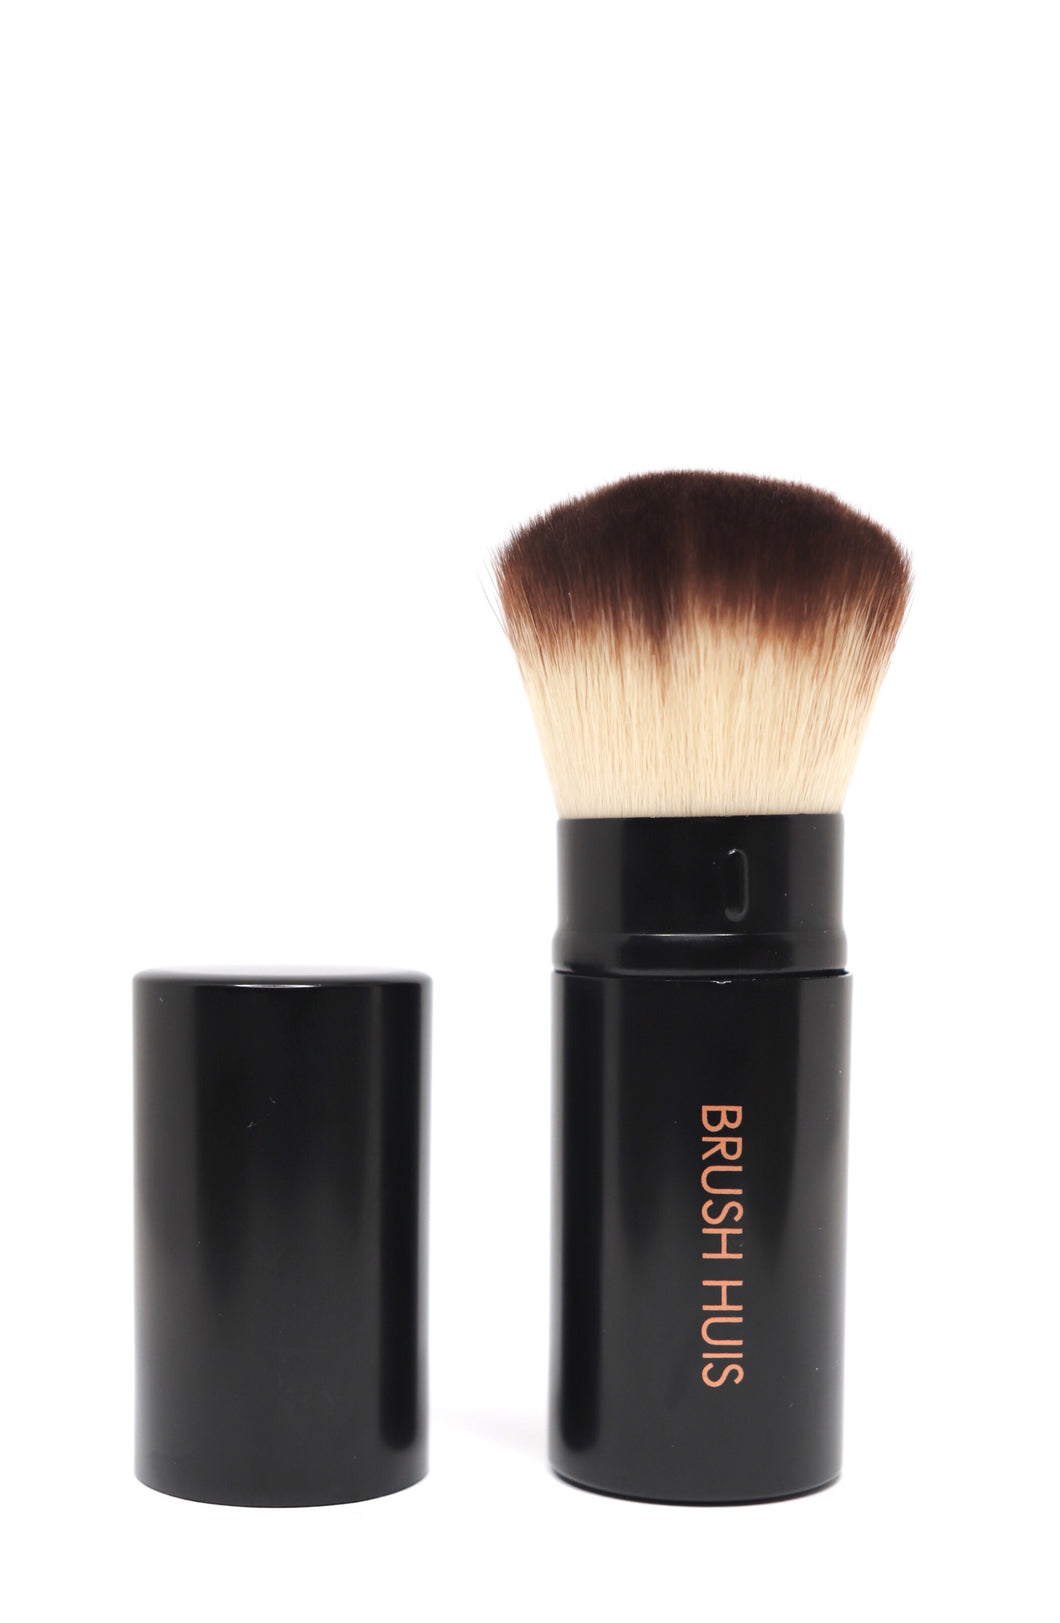 High quality affordable kabuki makeup brush, compact with a lid to keep safe in handbag.